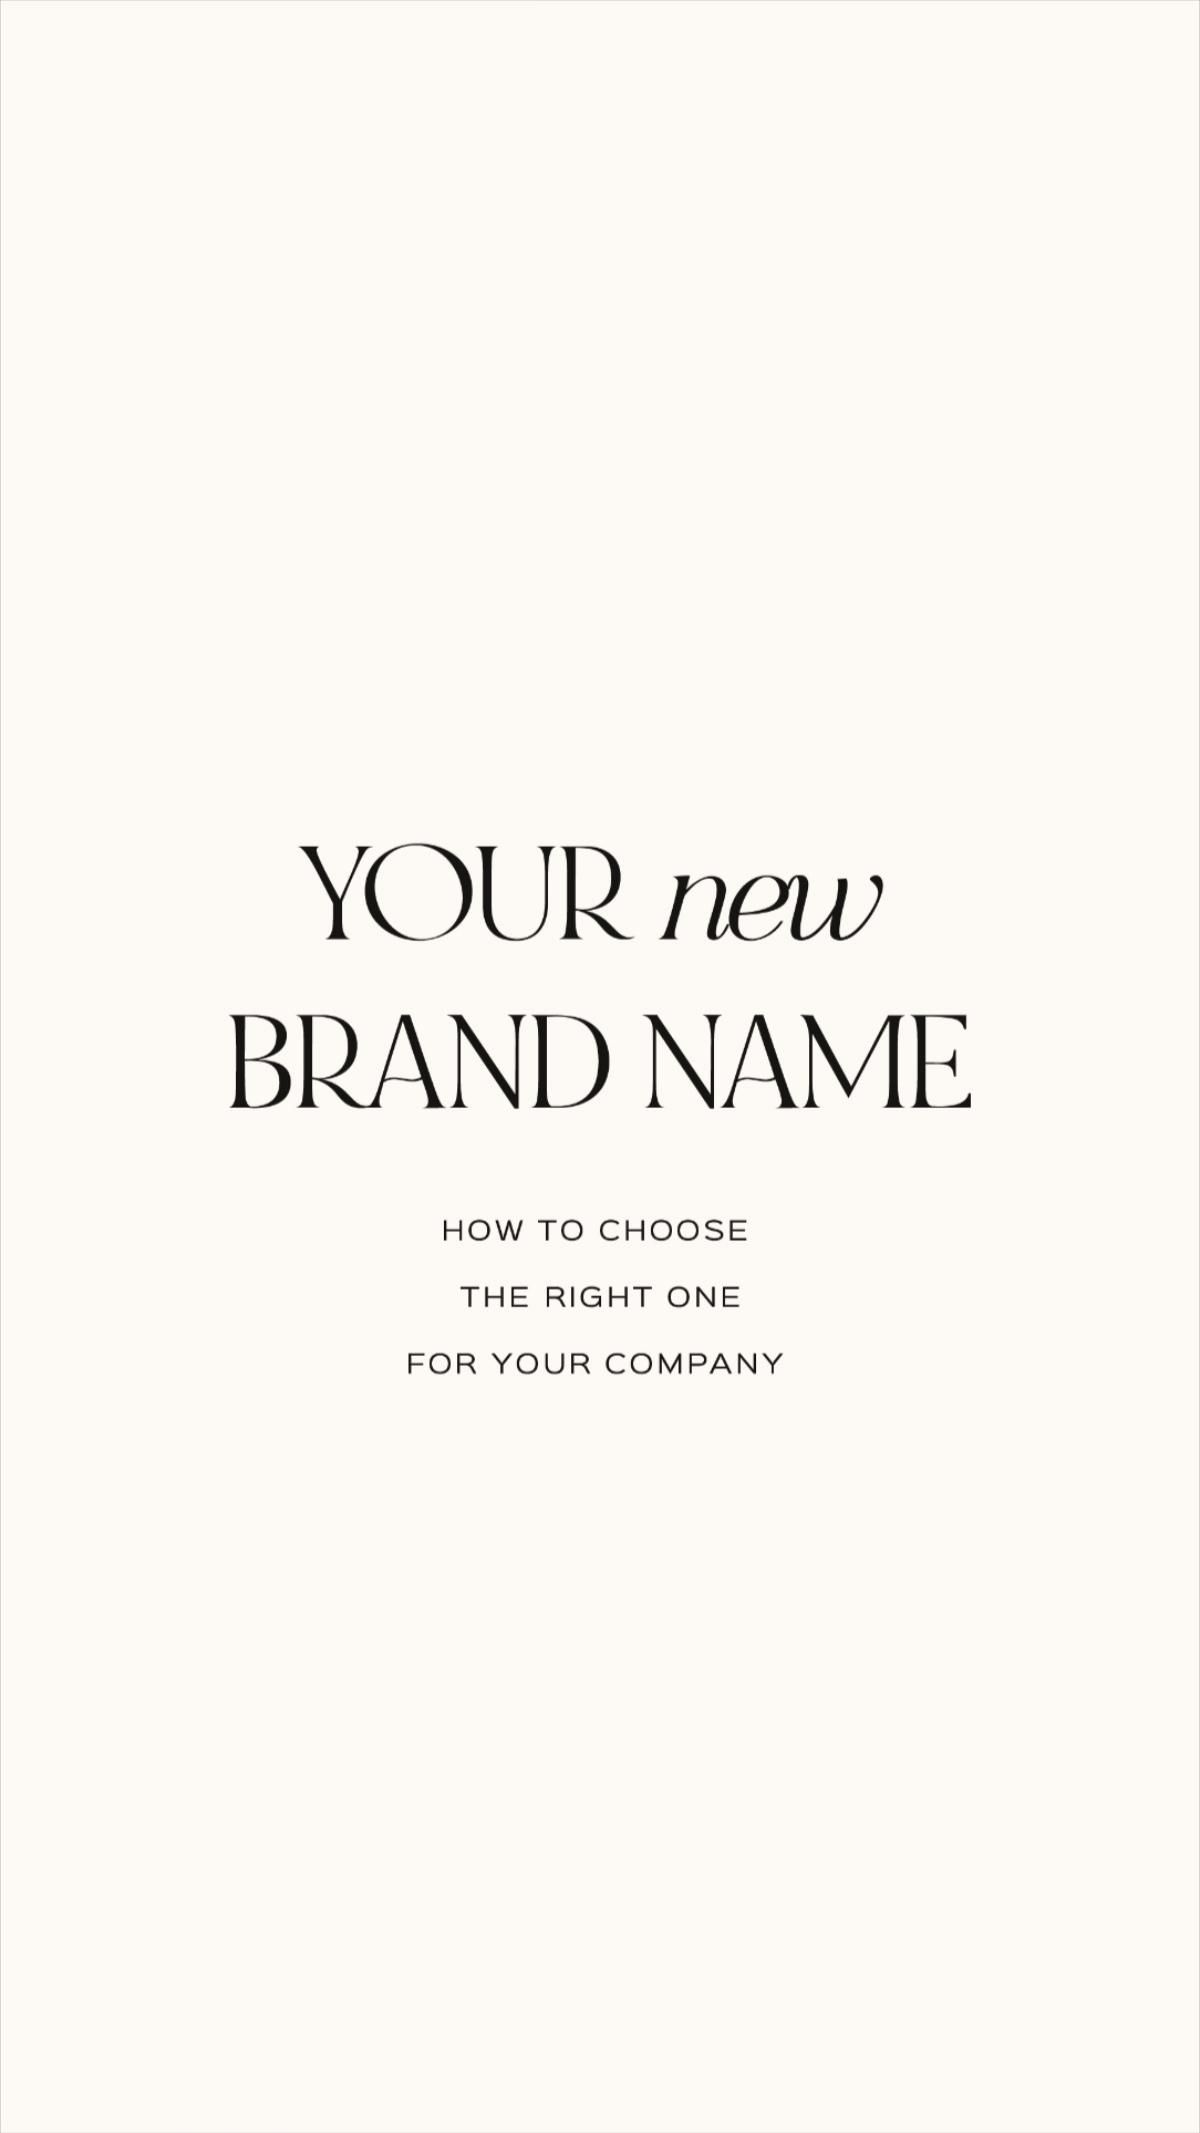 How to Choose the Right Brand Name